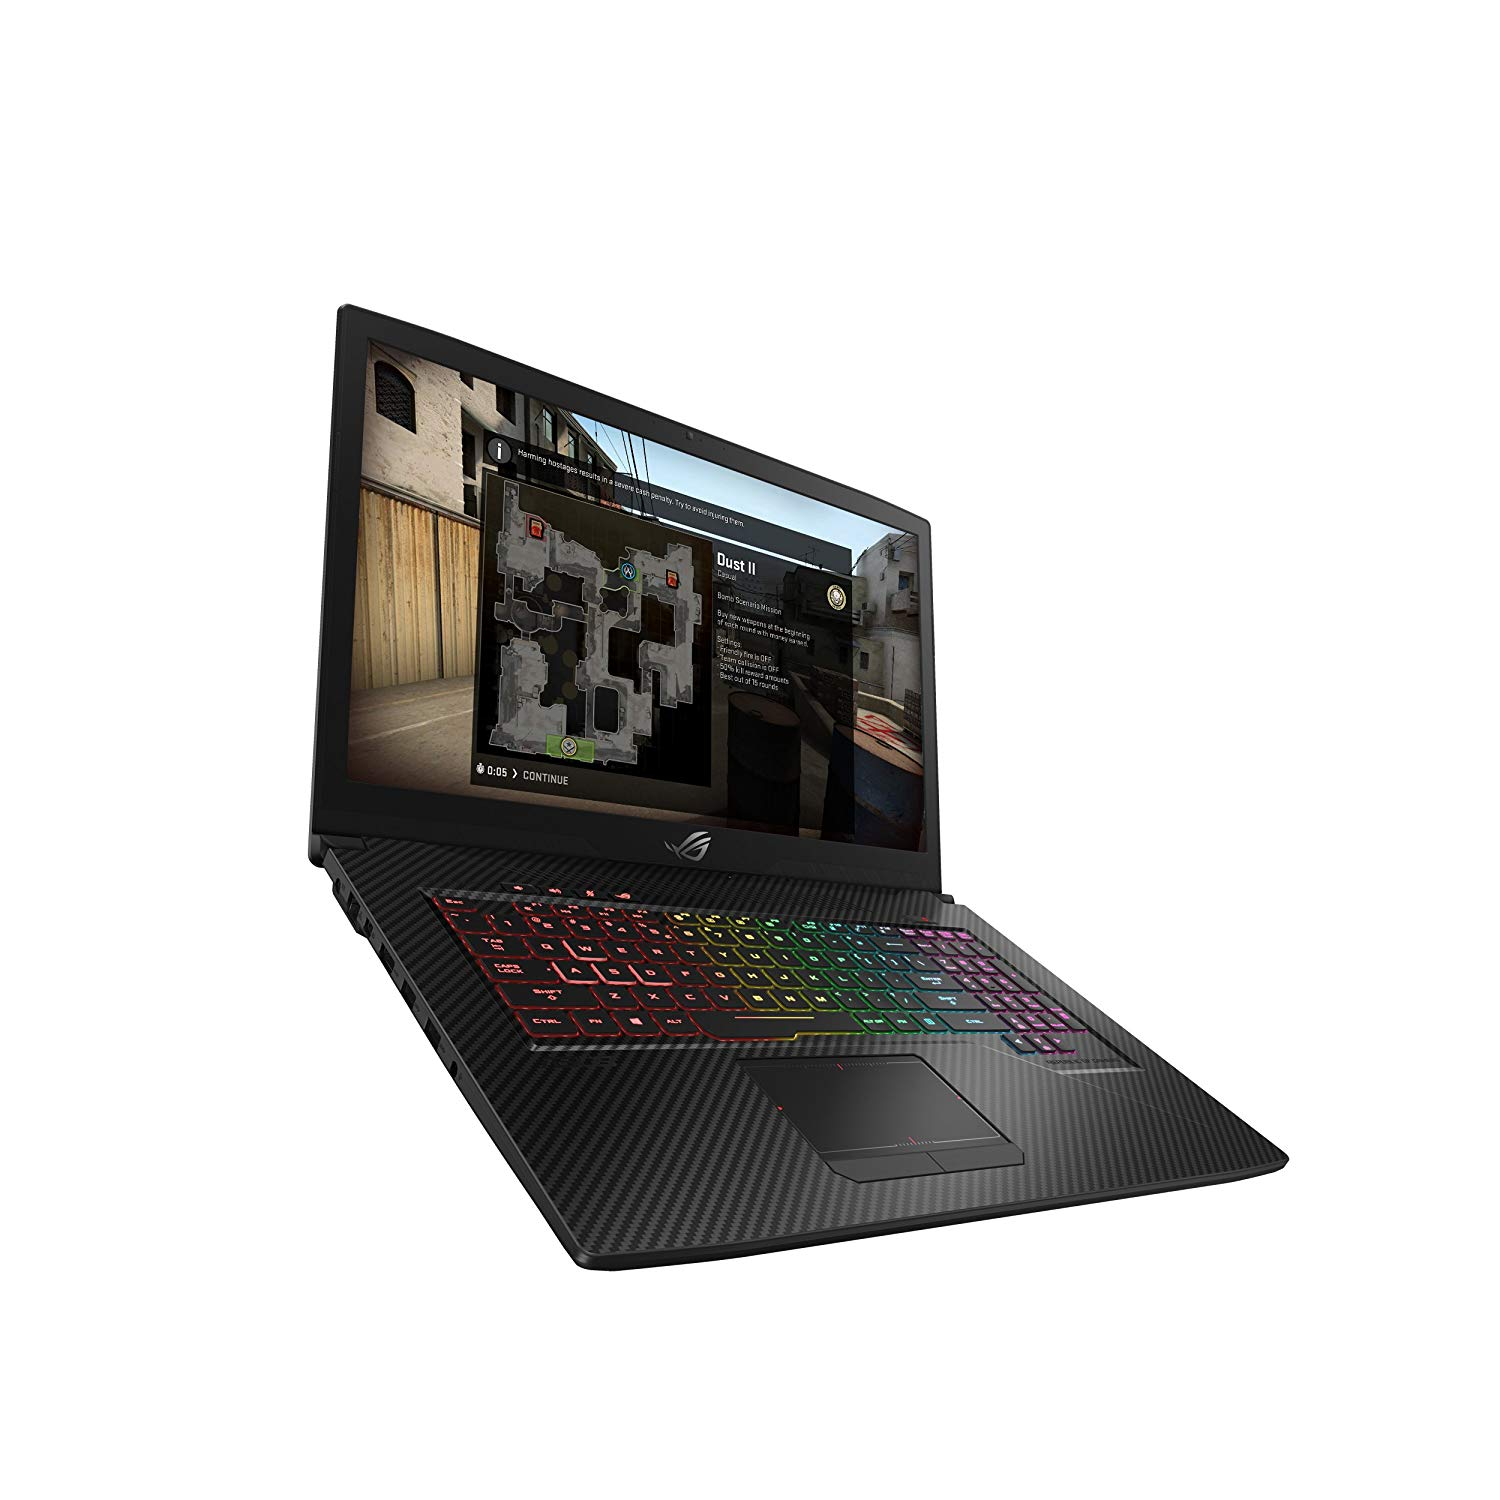 ASUS ROG Strix GL703GM-EE014T 17.3 Inch Gaming Laptop